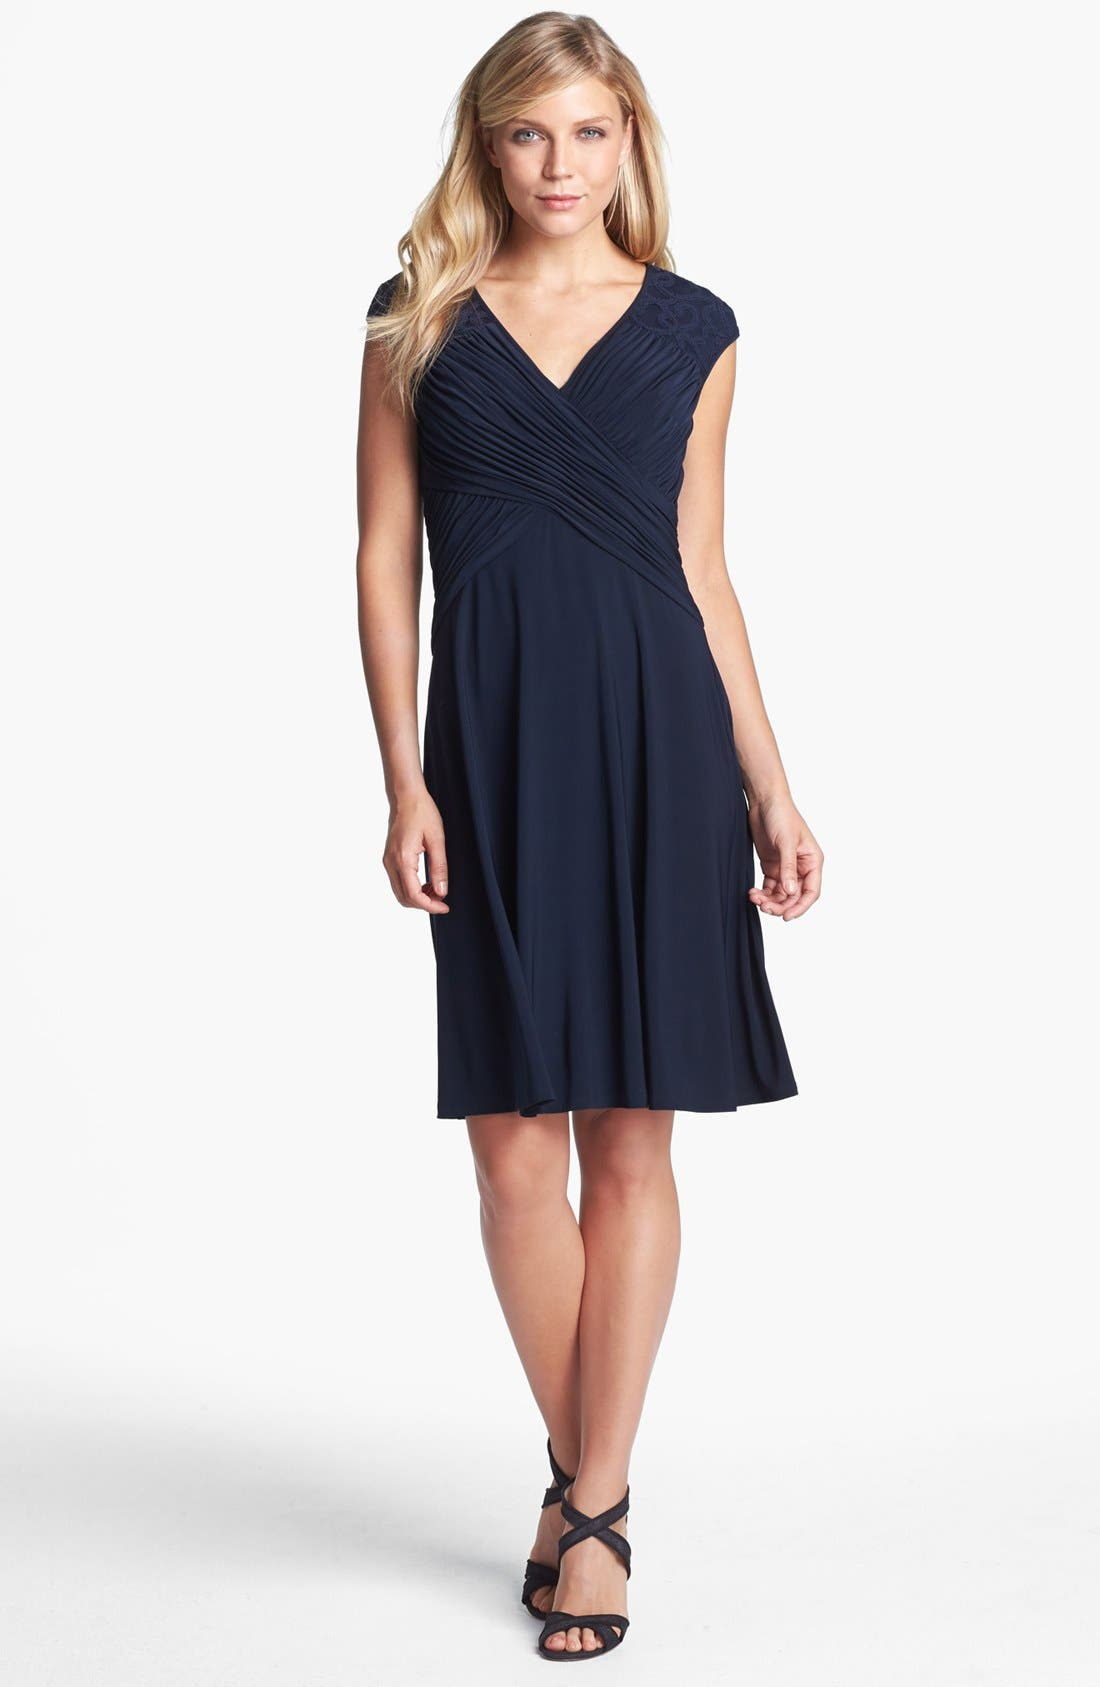 Alternate Image 1 Selected - Adrianna Papell Lace Yoke Jersey Fit & Flare Dress